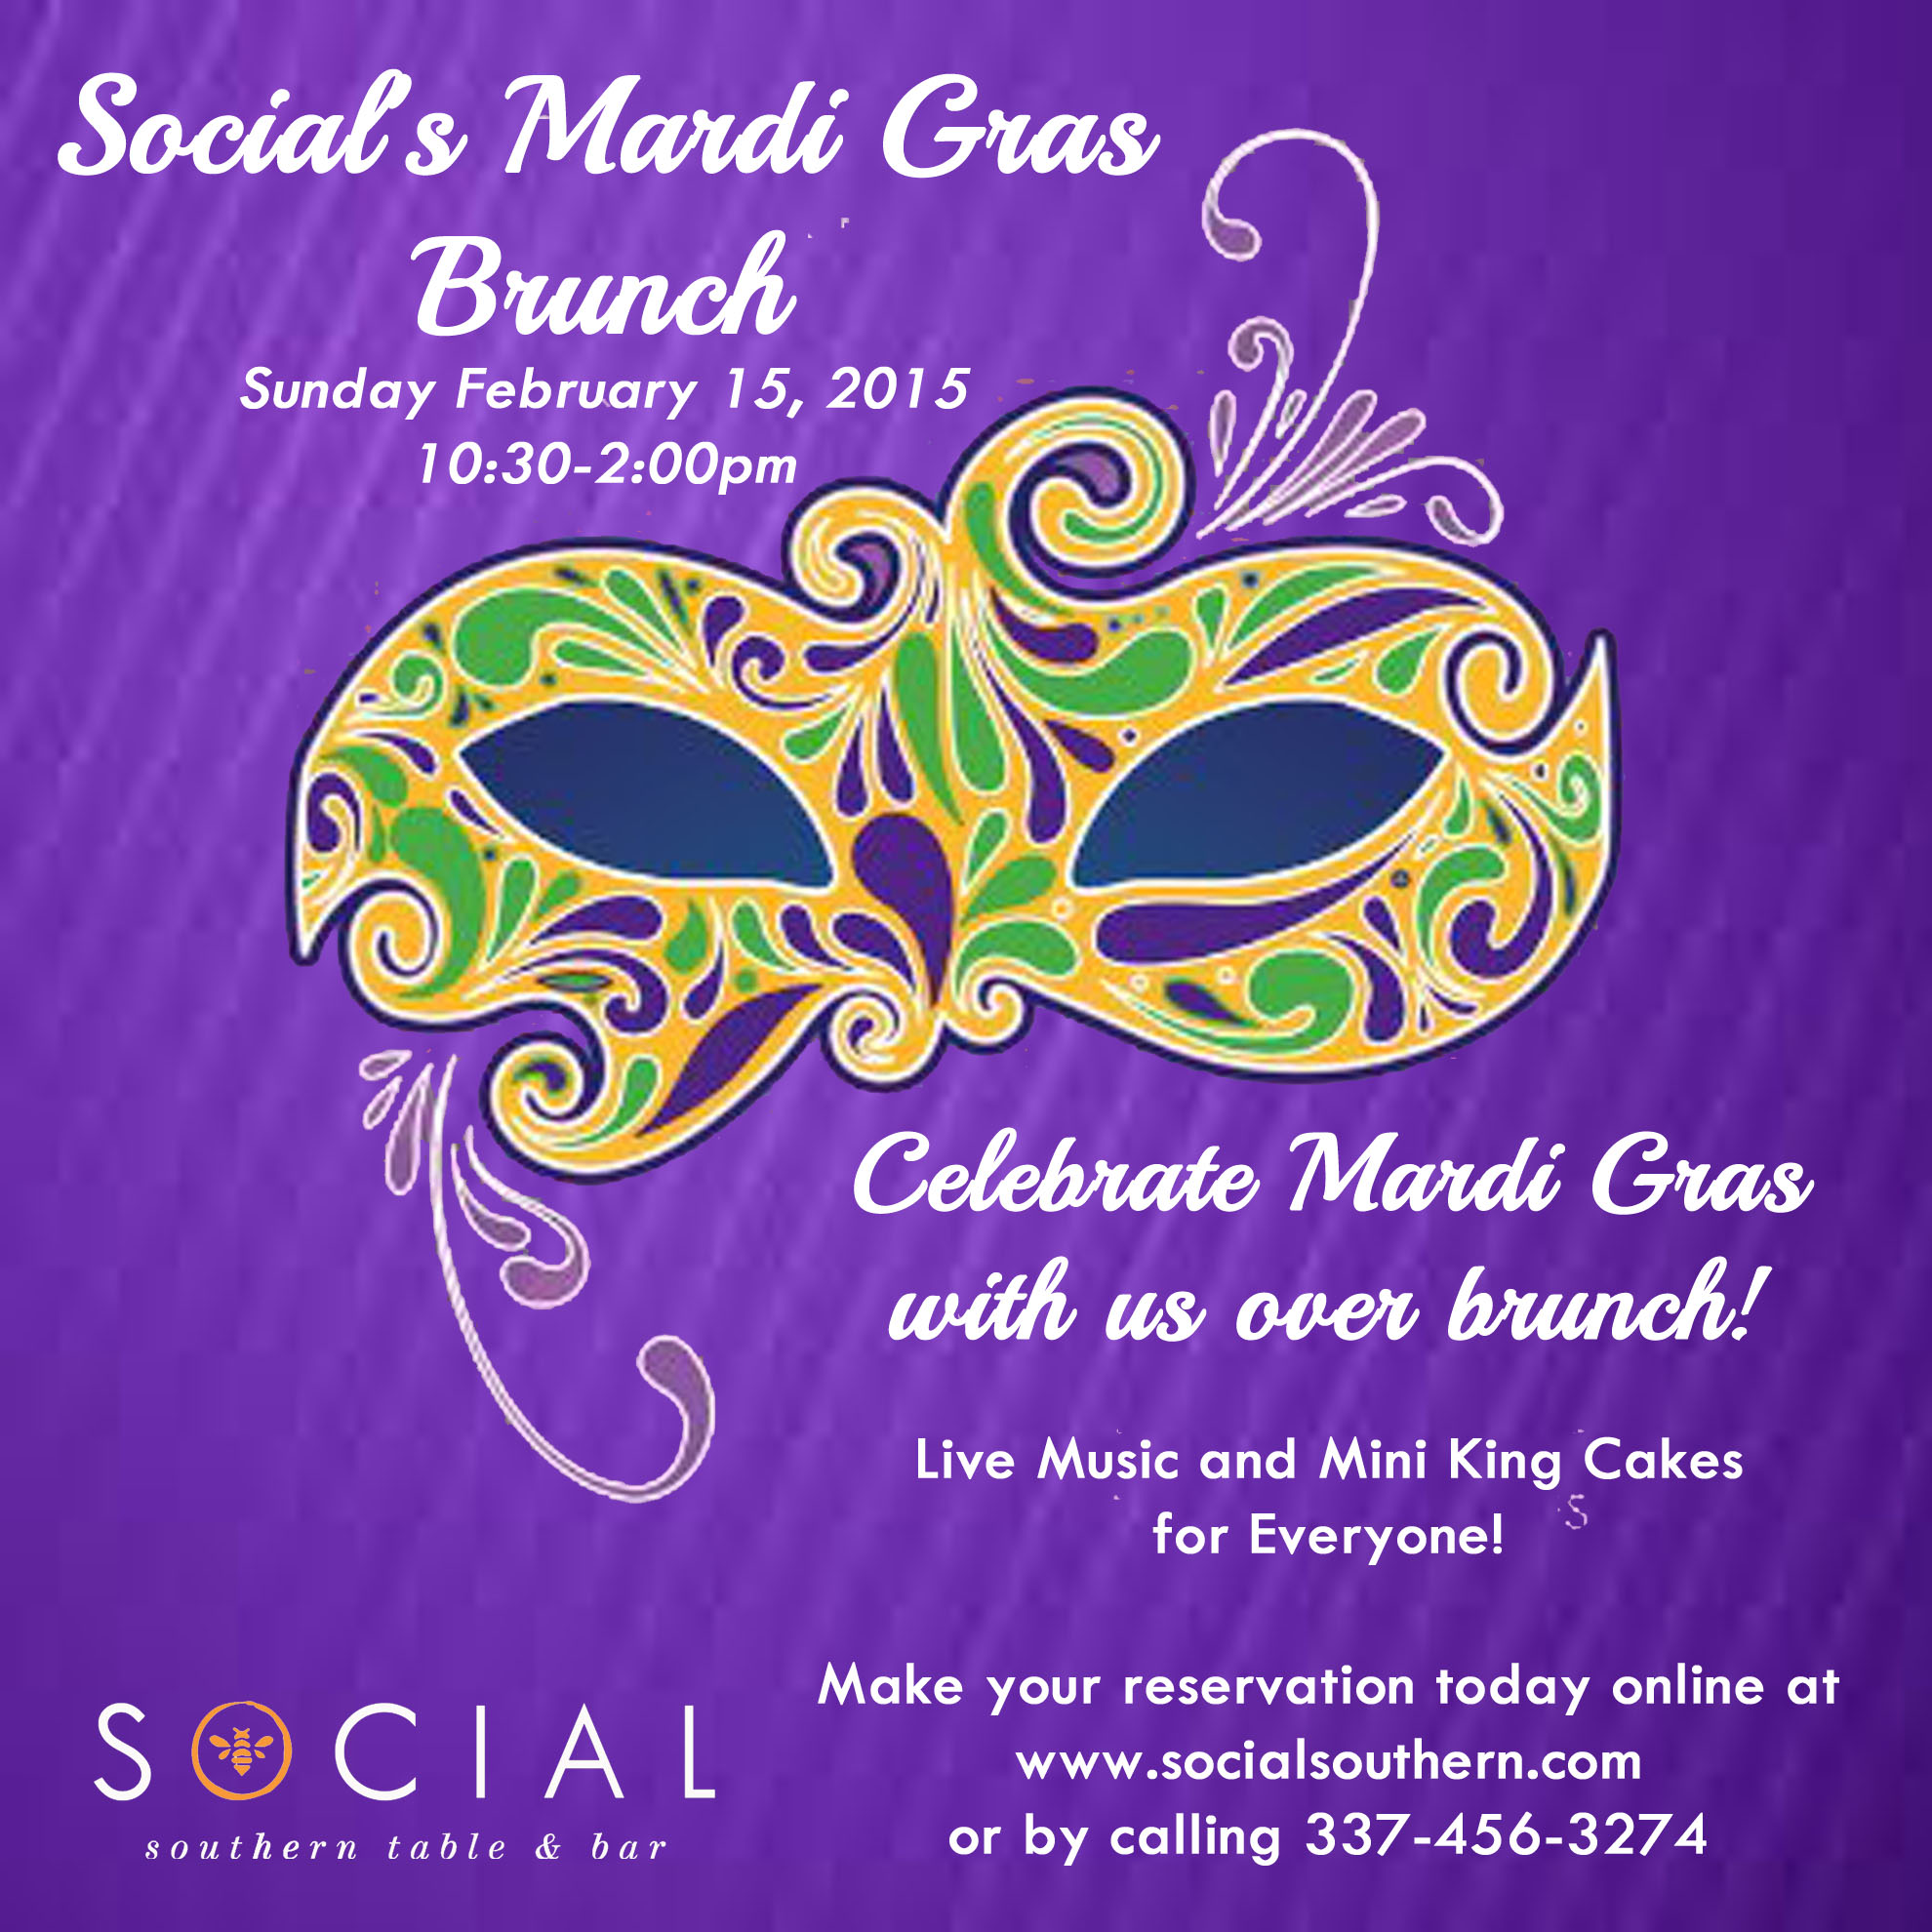 We will also be open Monday February 16 for all you revelers! Join us in celebrating carnival!